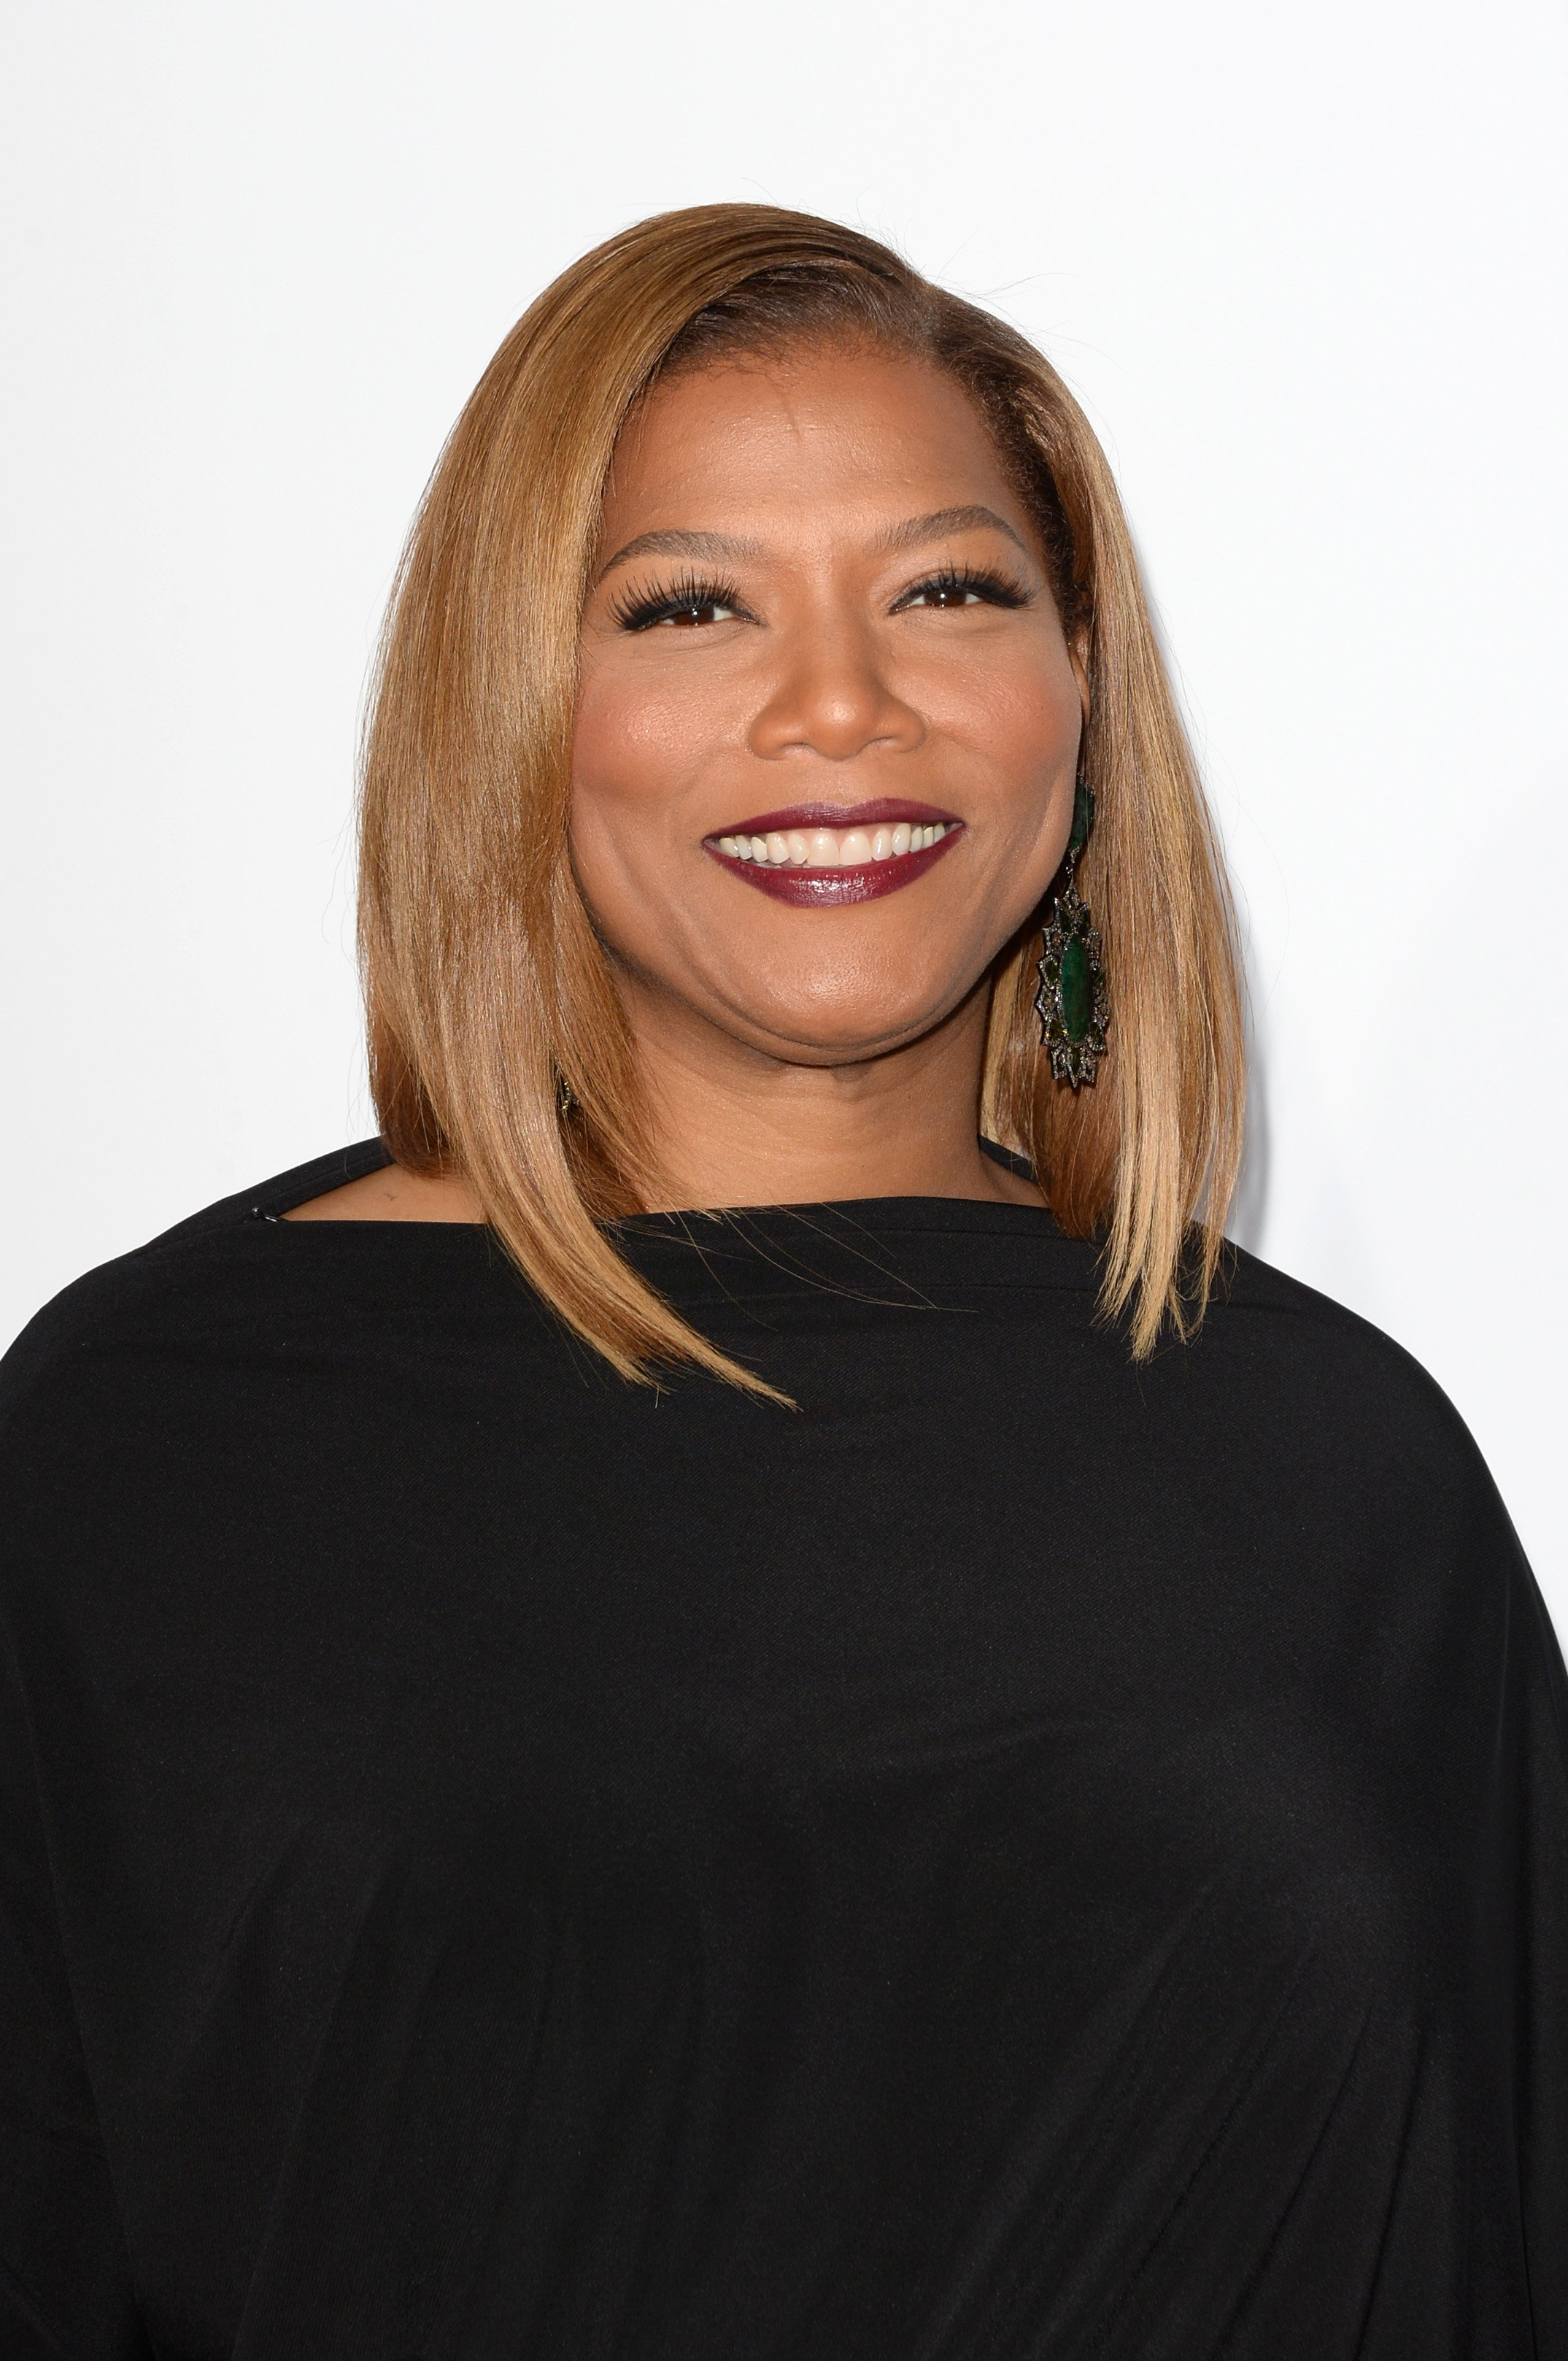 Queen Latifah at the People's Choice Awards in 2014. | Photo: Getty Images